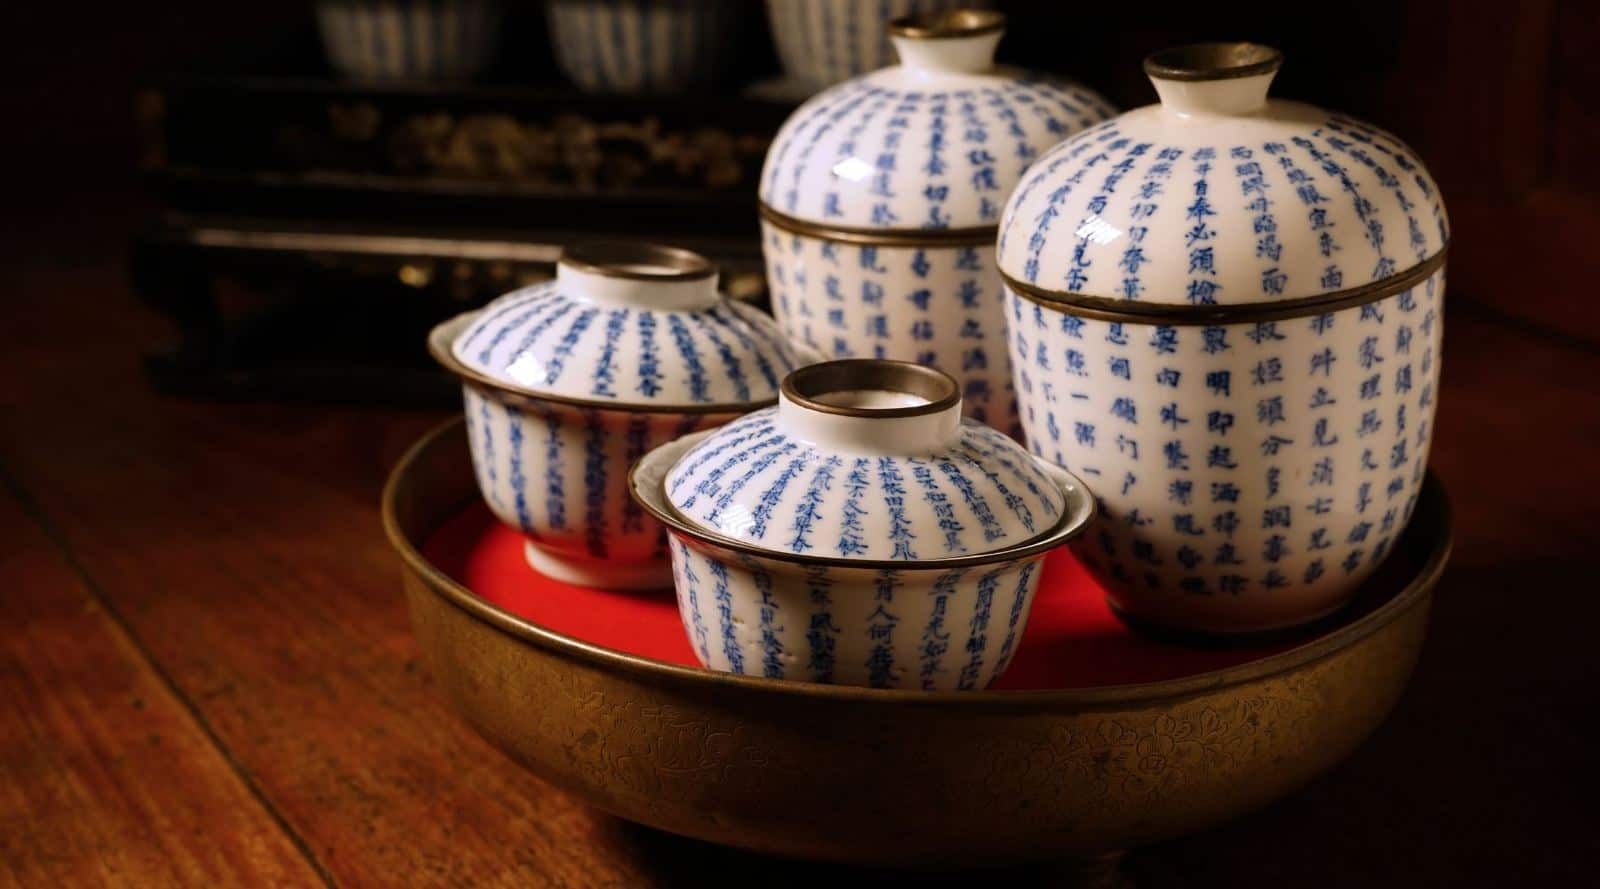 common tea sets in china